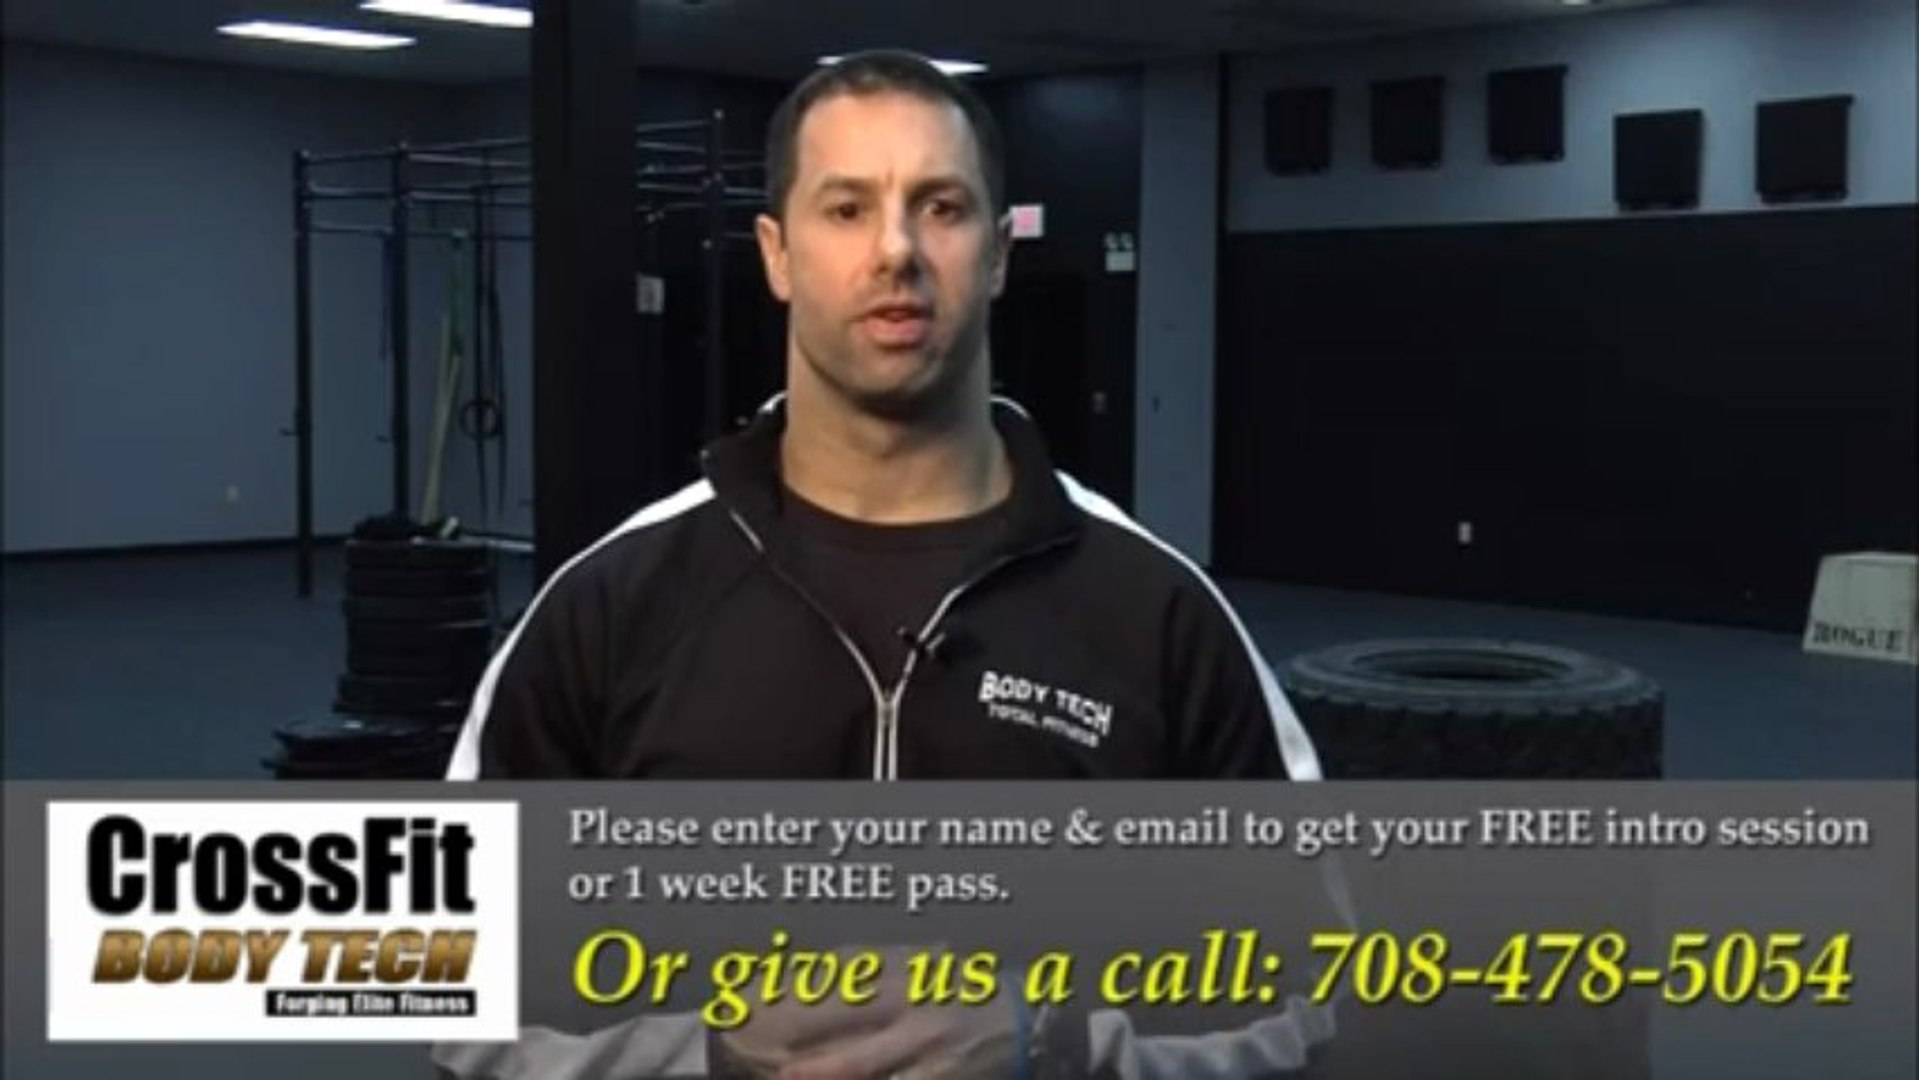 CrossFit Body Tech located in Tinley Park Illinois | CrossFit Body Tech around Tinley Park IL